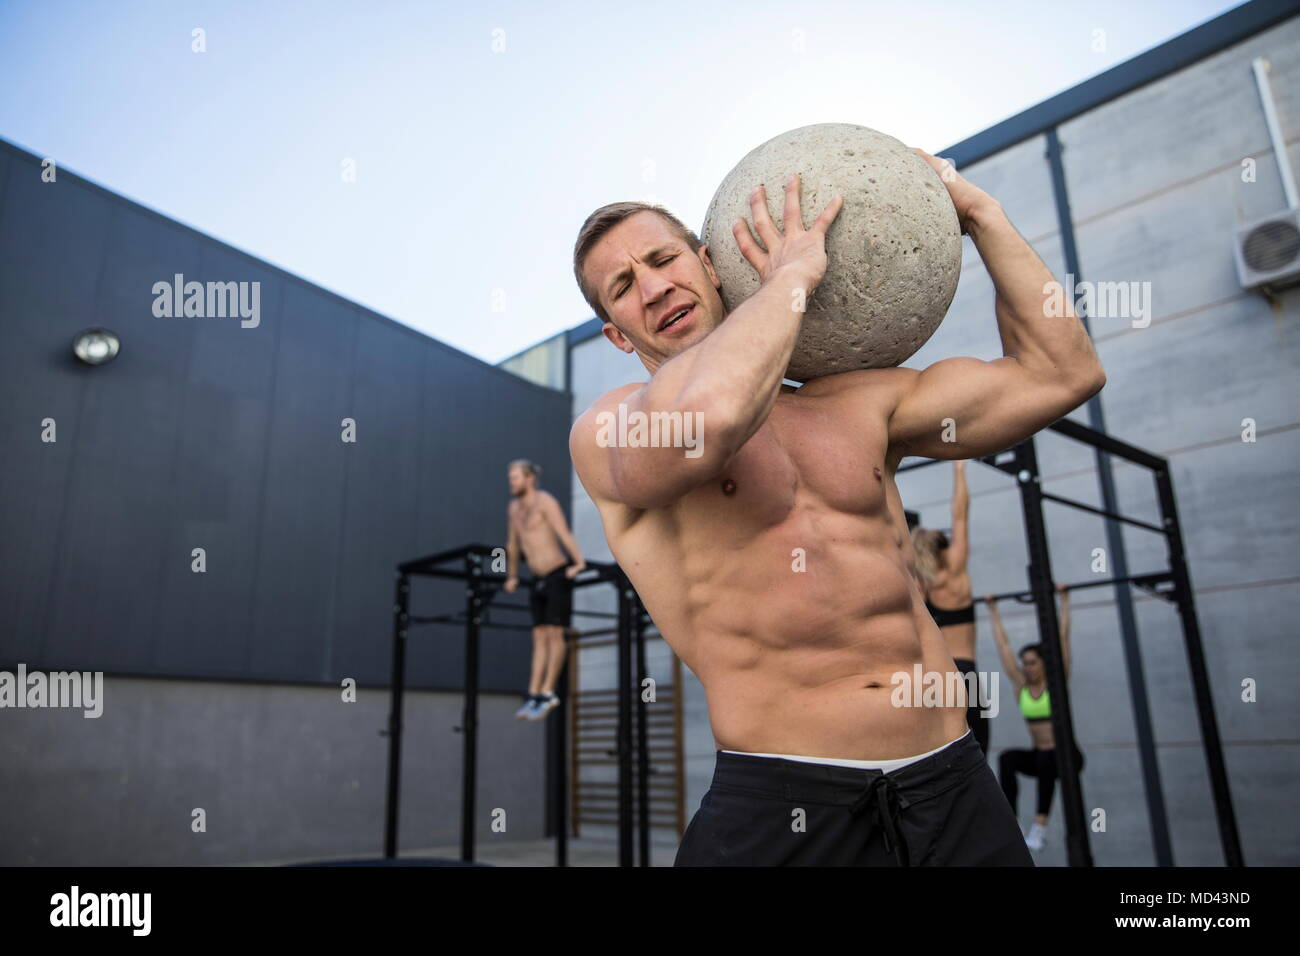 Four people exercising in gymnasium, man in foreground using atlas stone - Stock Image